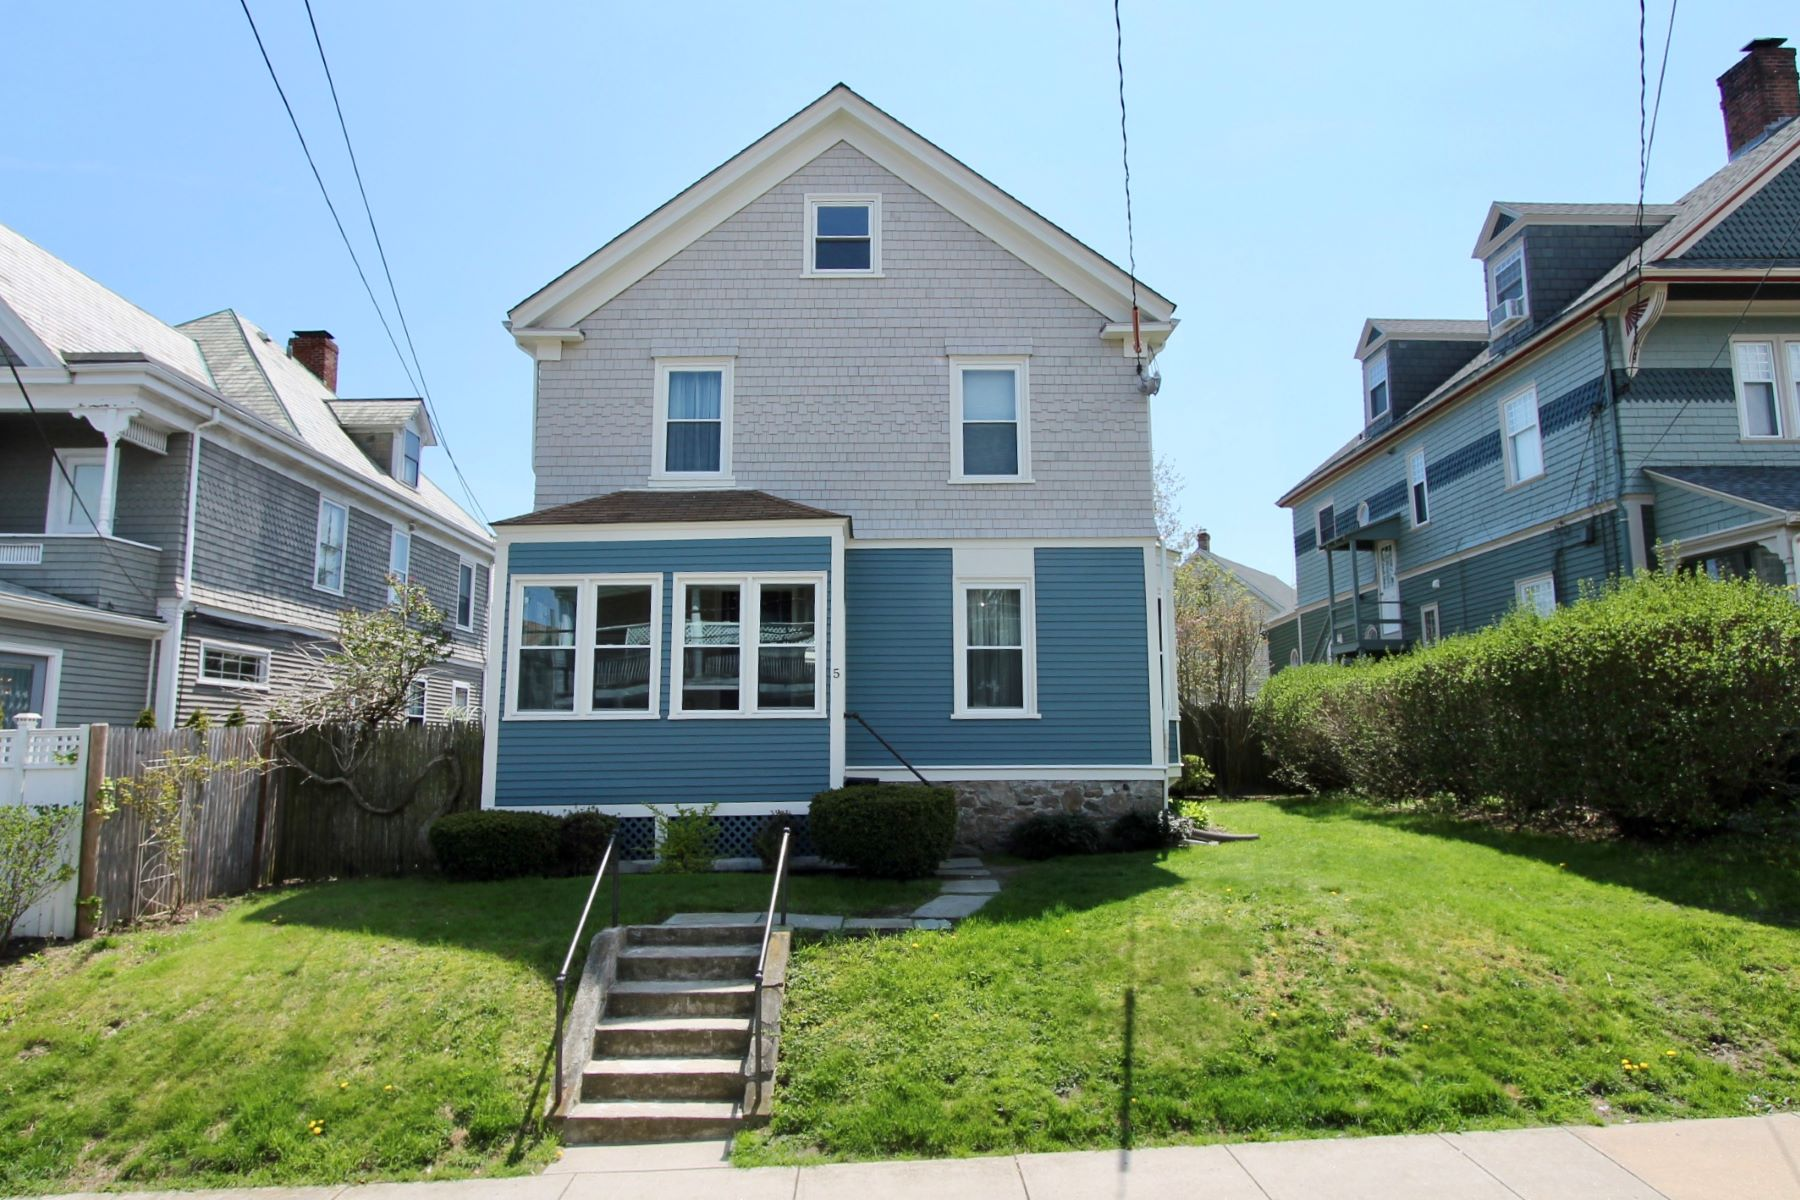 Single Family Homes for Sale at North Broadway Gem 5 Bliss Road Newport, Rhode Island 02840 United States